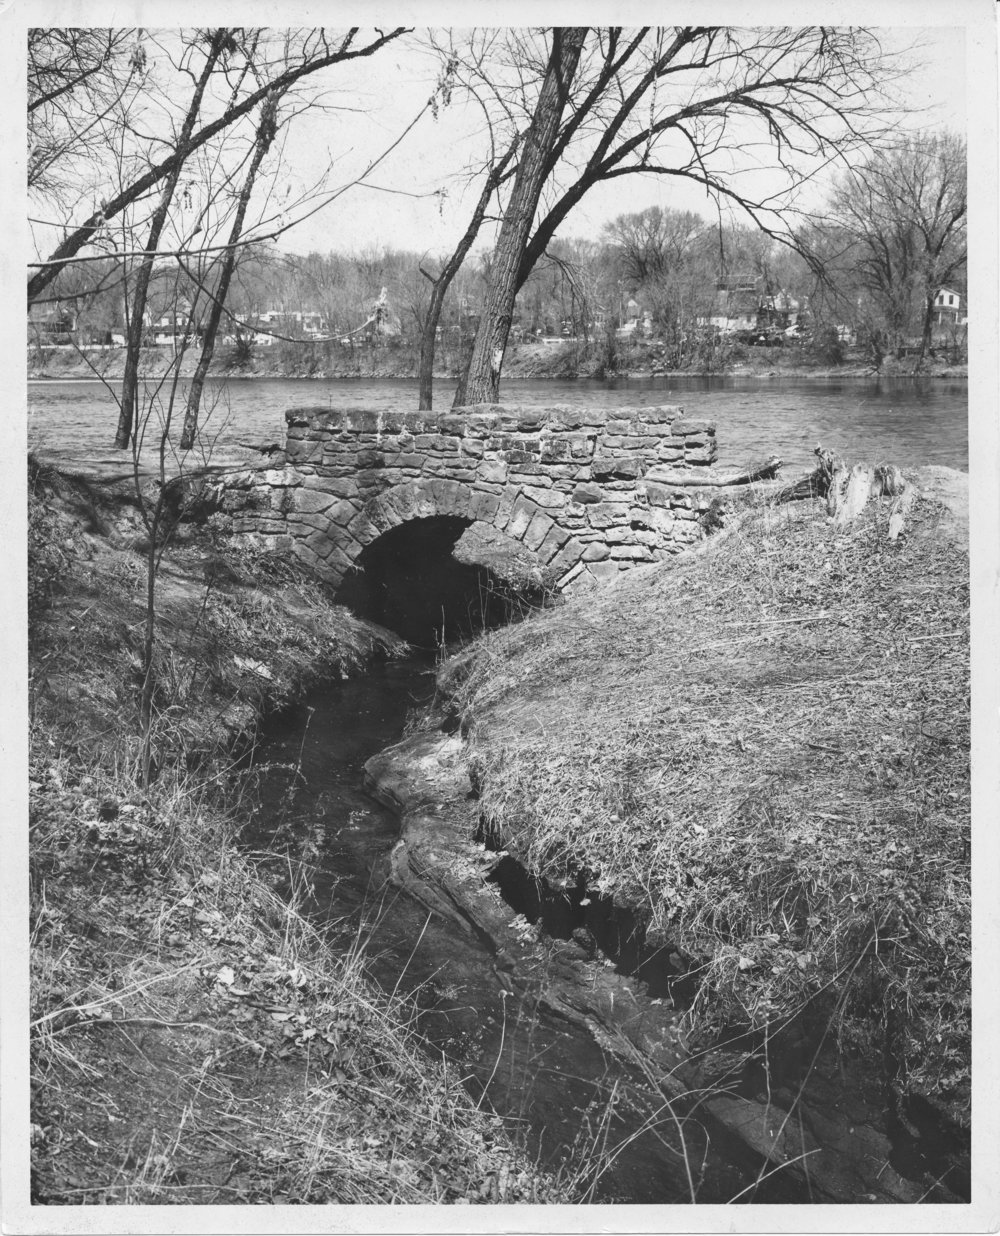 Stone bridge near the falls, ca. 1950-60's